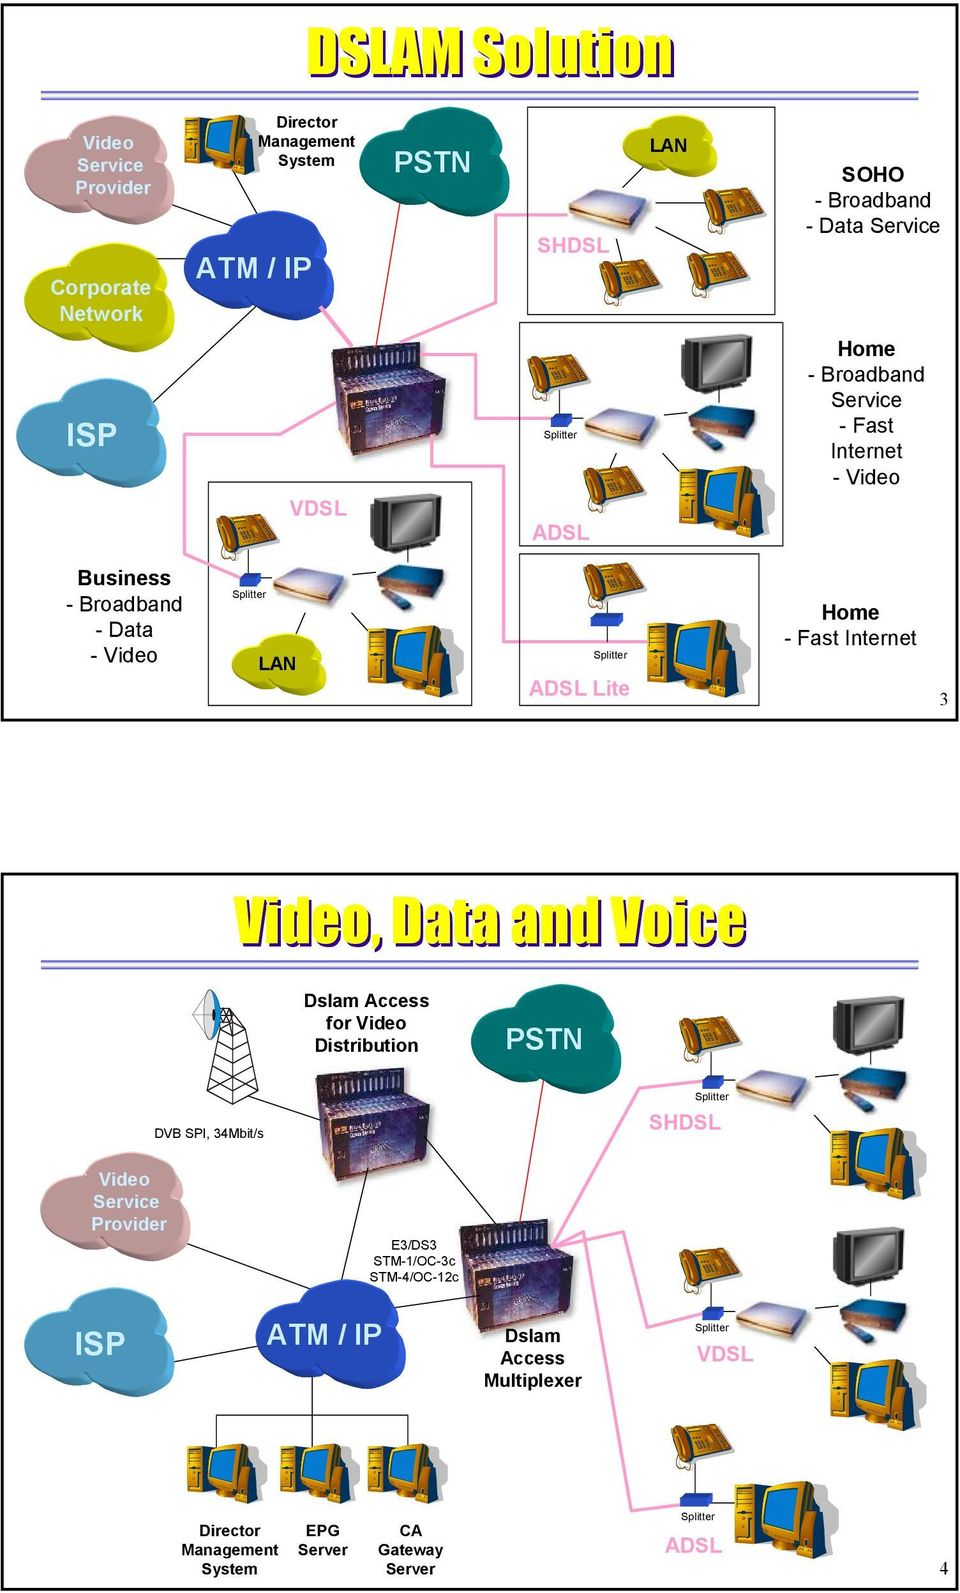 Home - Fast Internet 3 Video, Data and Voice Dslam Access for Video Distribution DVB SPI, 34Mbit/s SHDSL Video Service